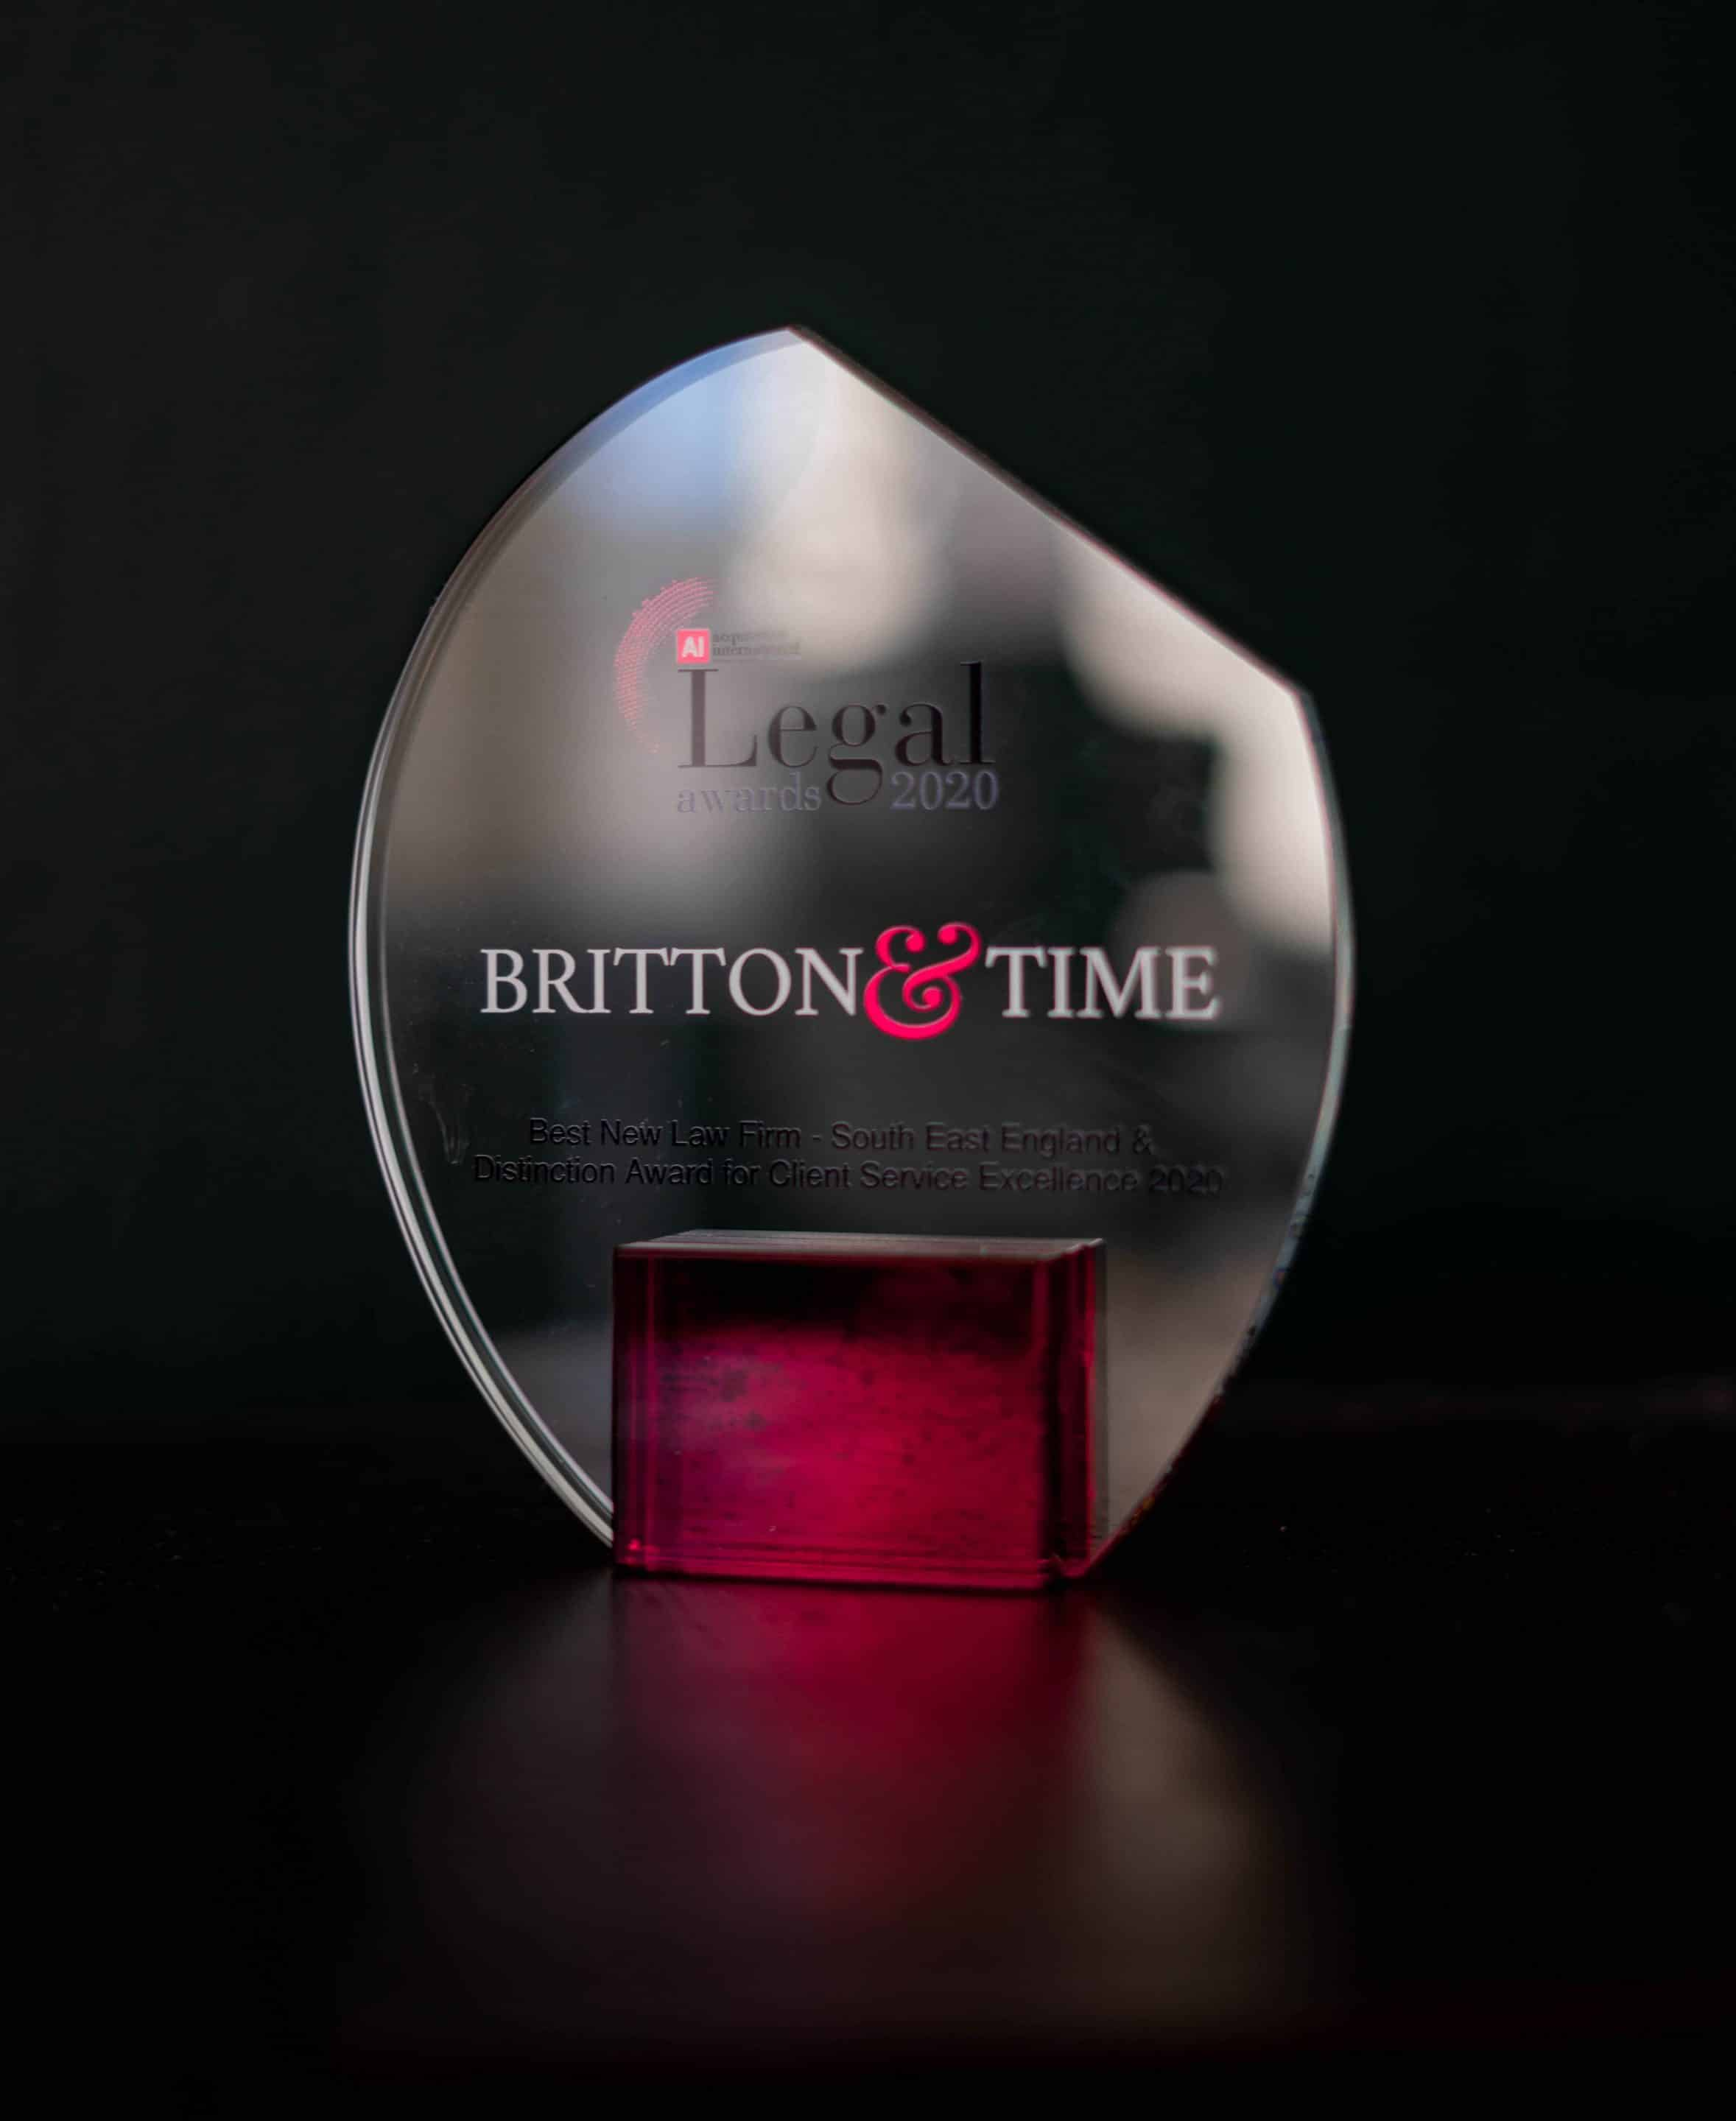 Award won by Britton and Time solicitors in Brighton and Hove min